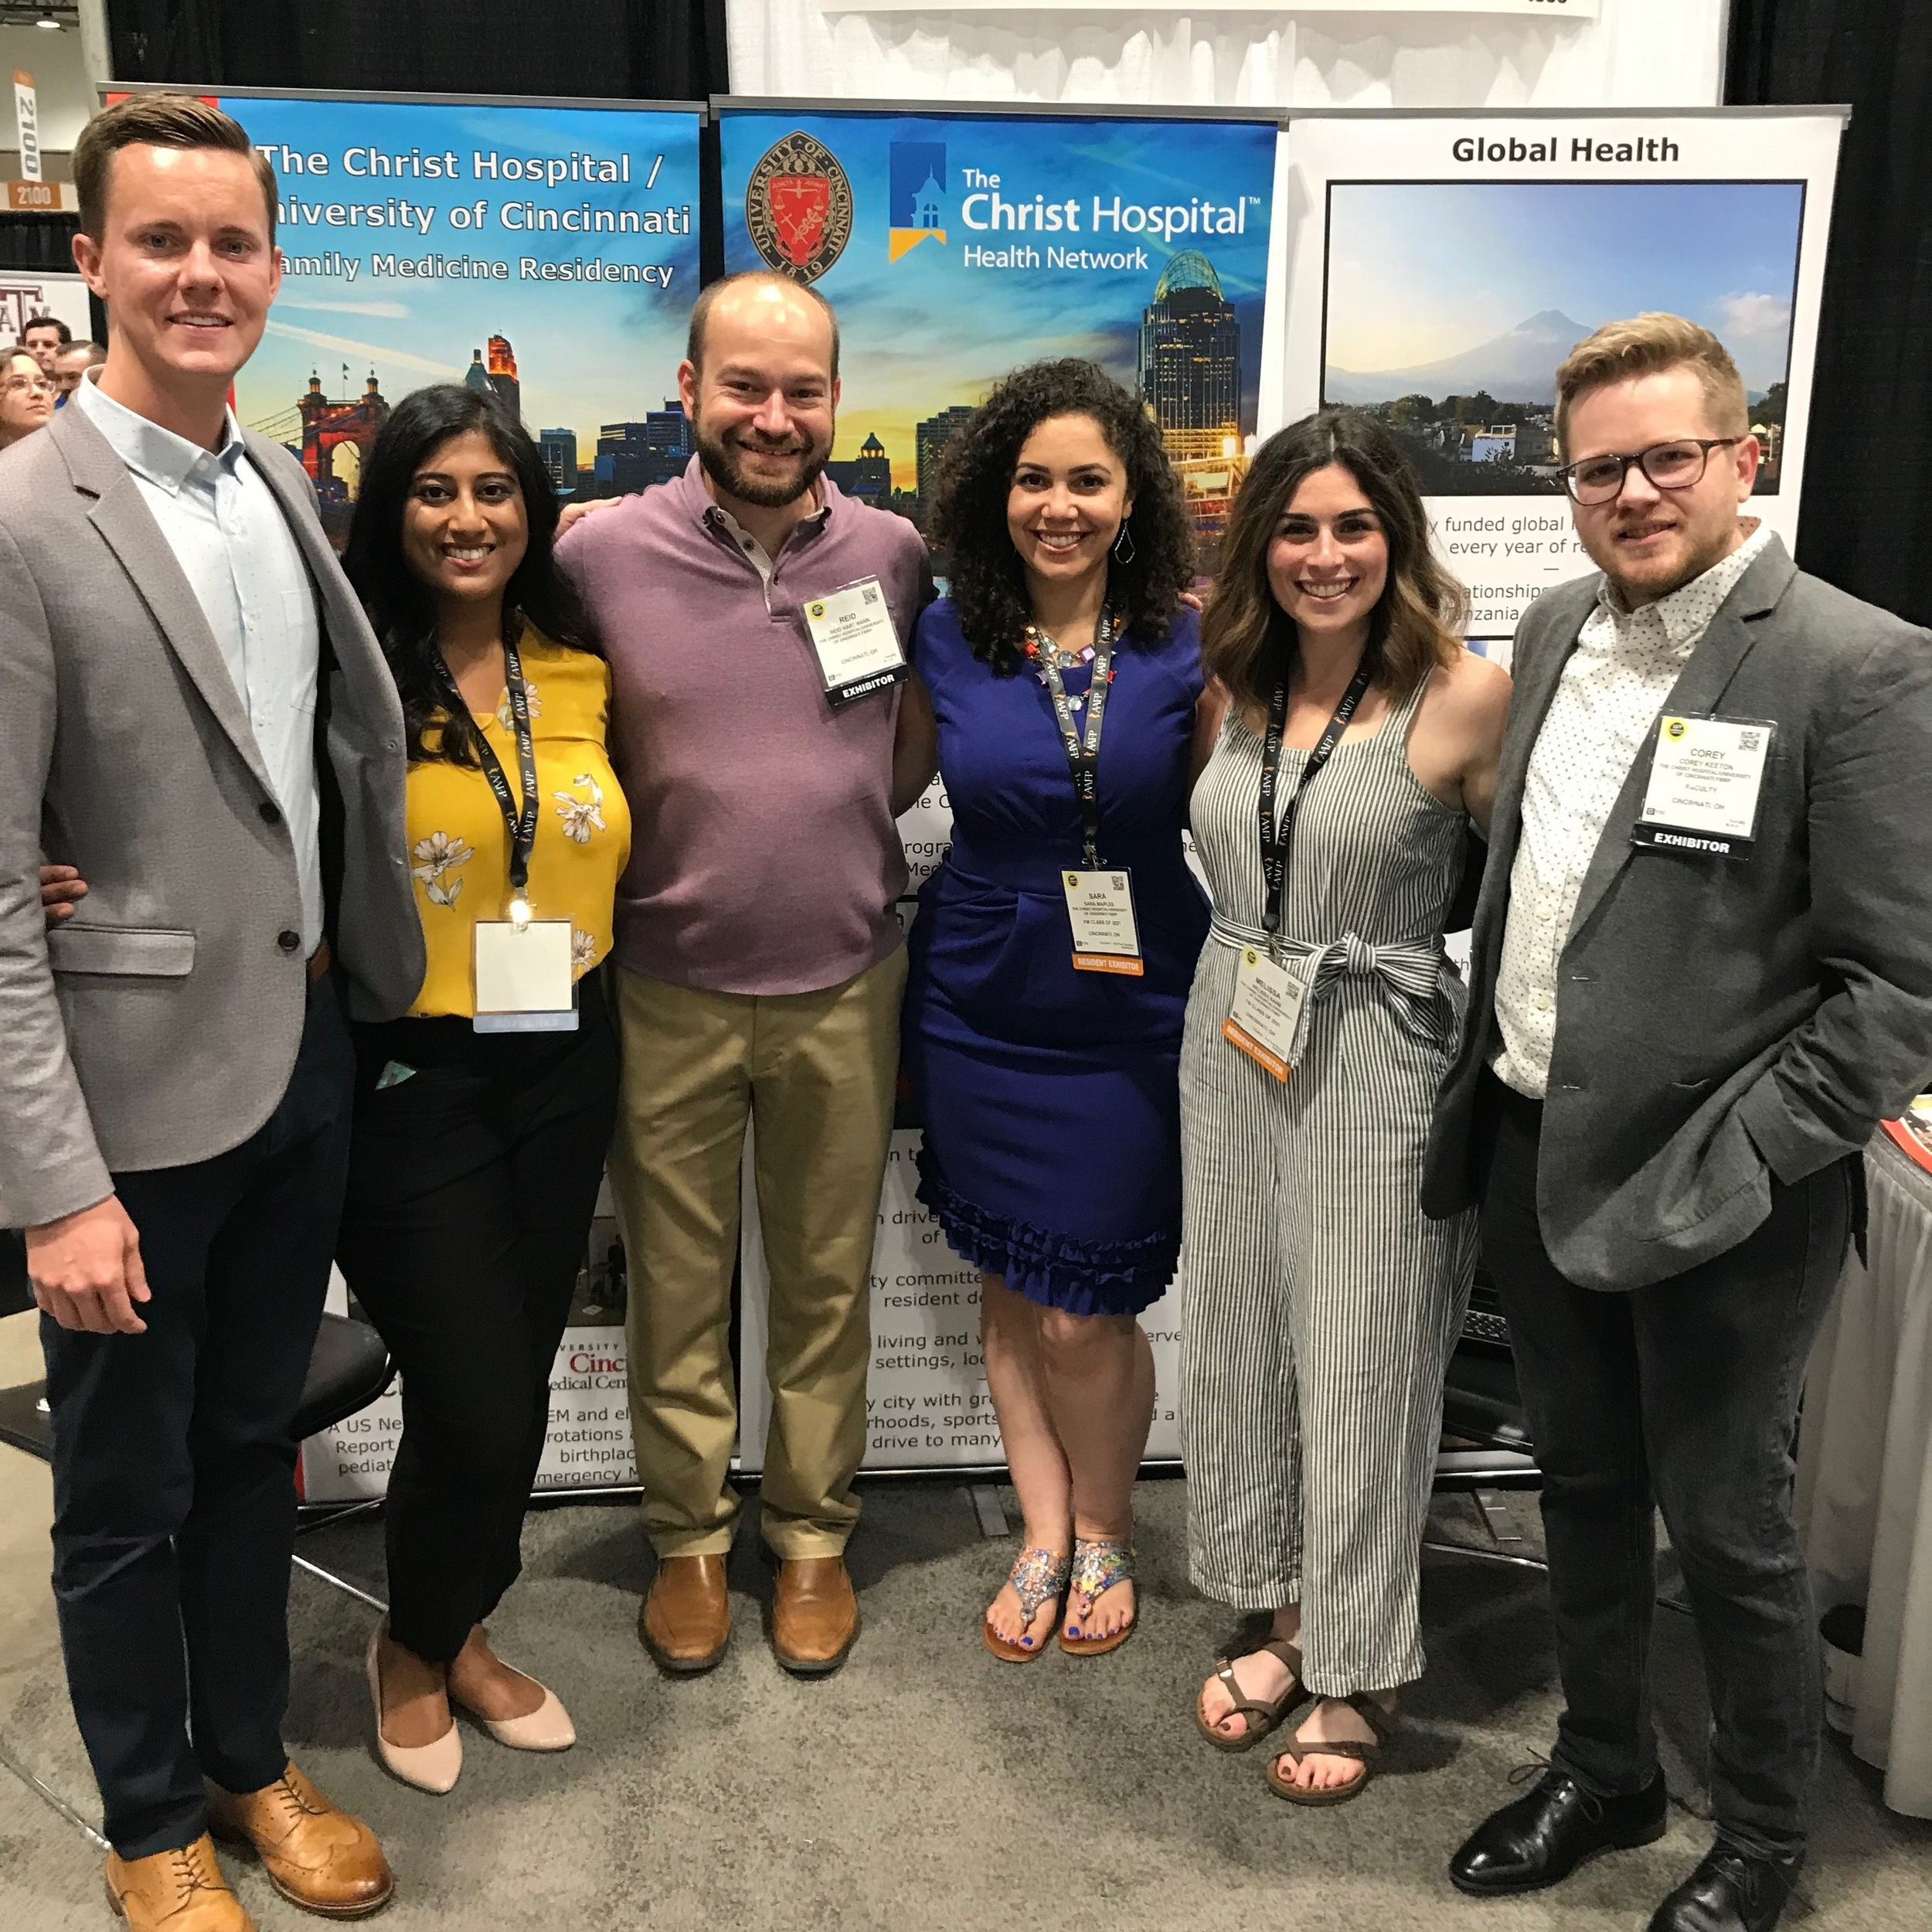 Christian Gausvik, Aruna Puthota, Reid Hartmann, Sara Maples, Melissa Saab and Corey Keeton representing our program at the national AAFP confern